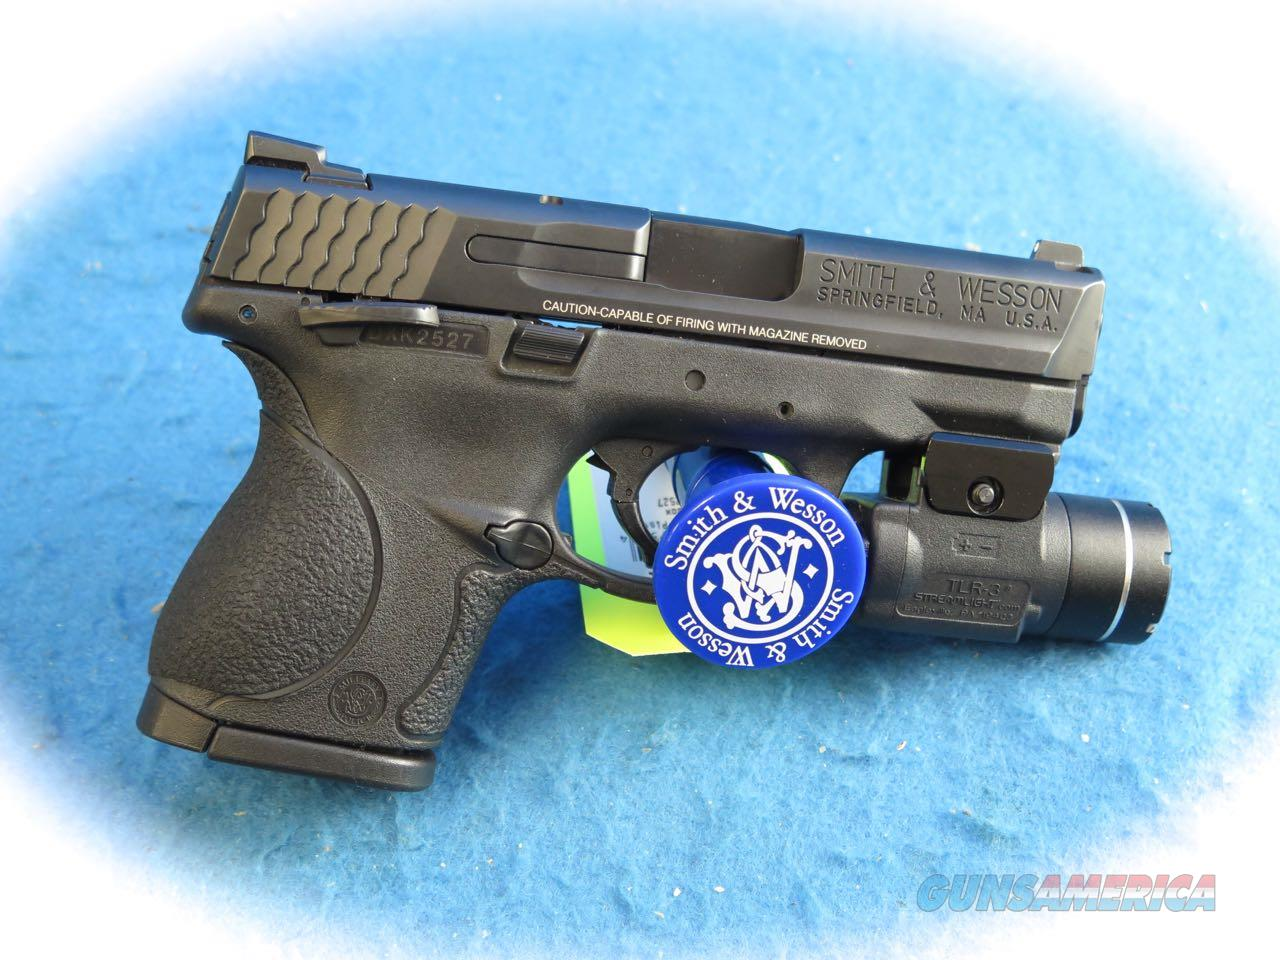 Smith & Wesson M&P9c 9mm Pistol W/TLR3 Light **Used**  Guns > Pistols > Smith & Wesson Pistols - Autos > Polymer Frame